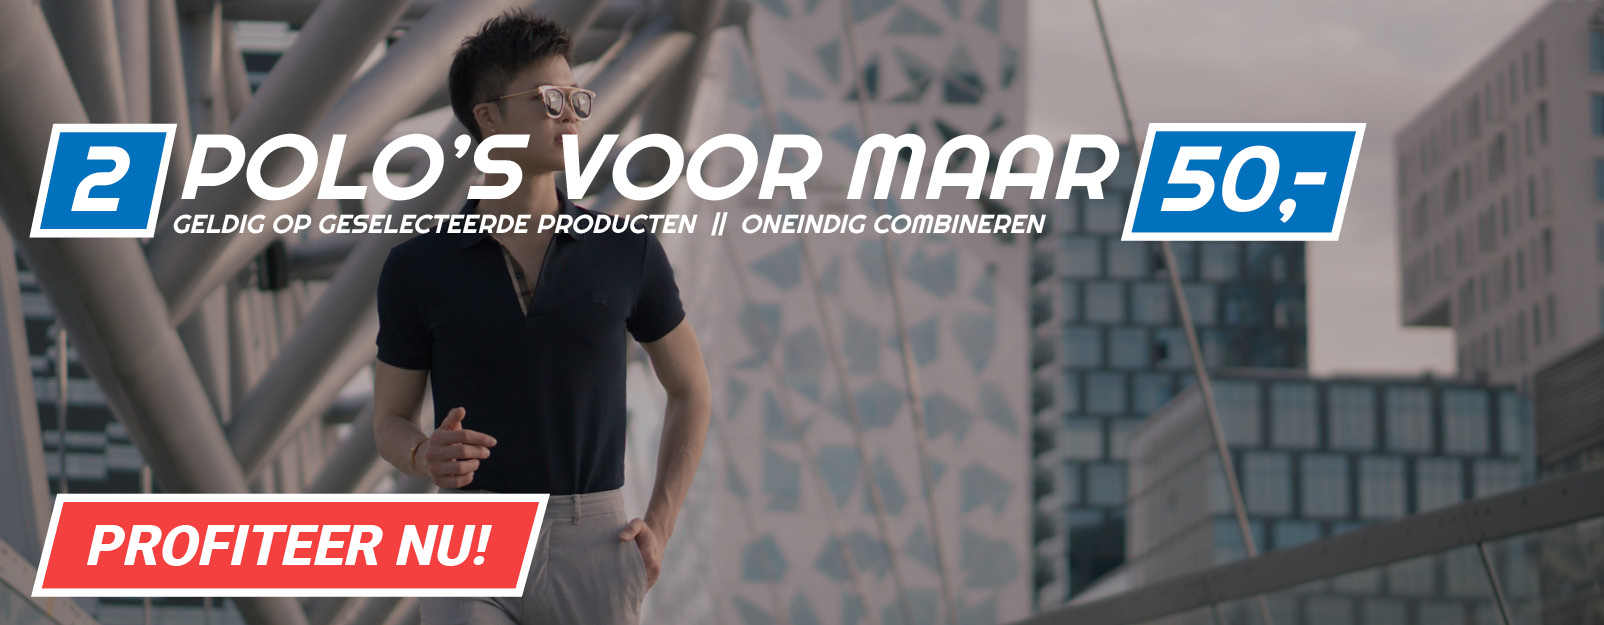 Polo's: 2 voor 50 euro